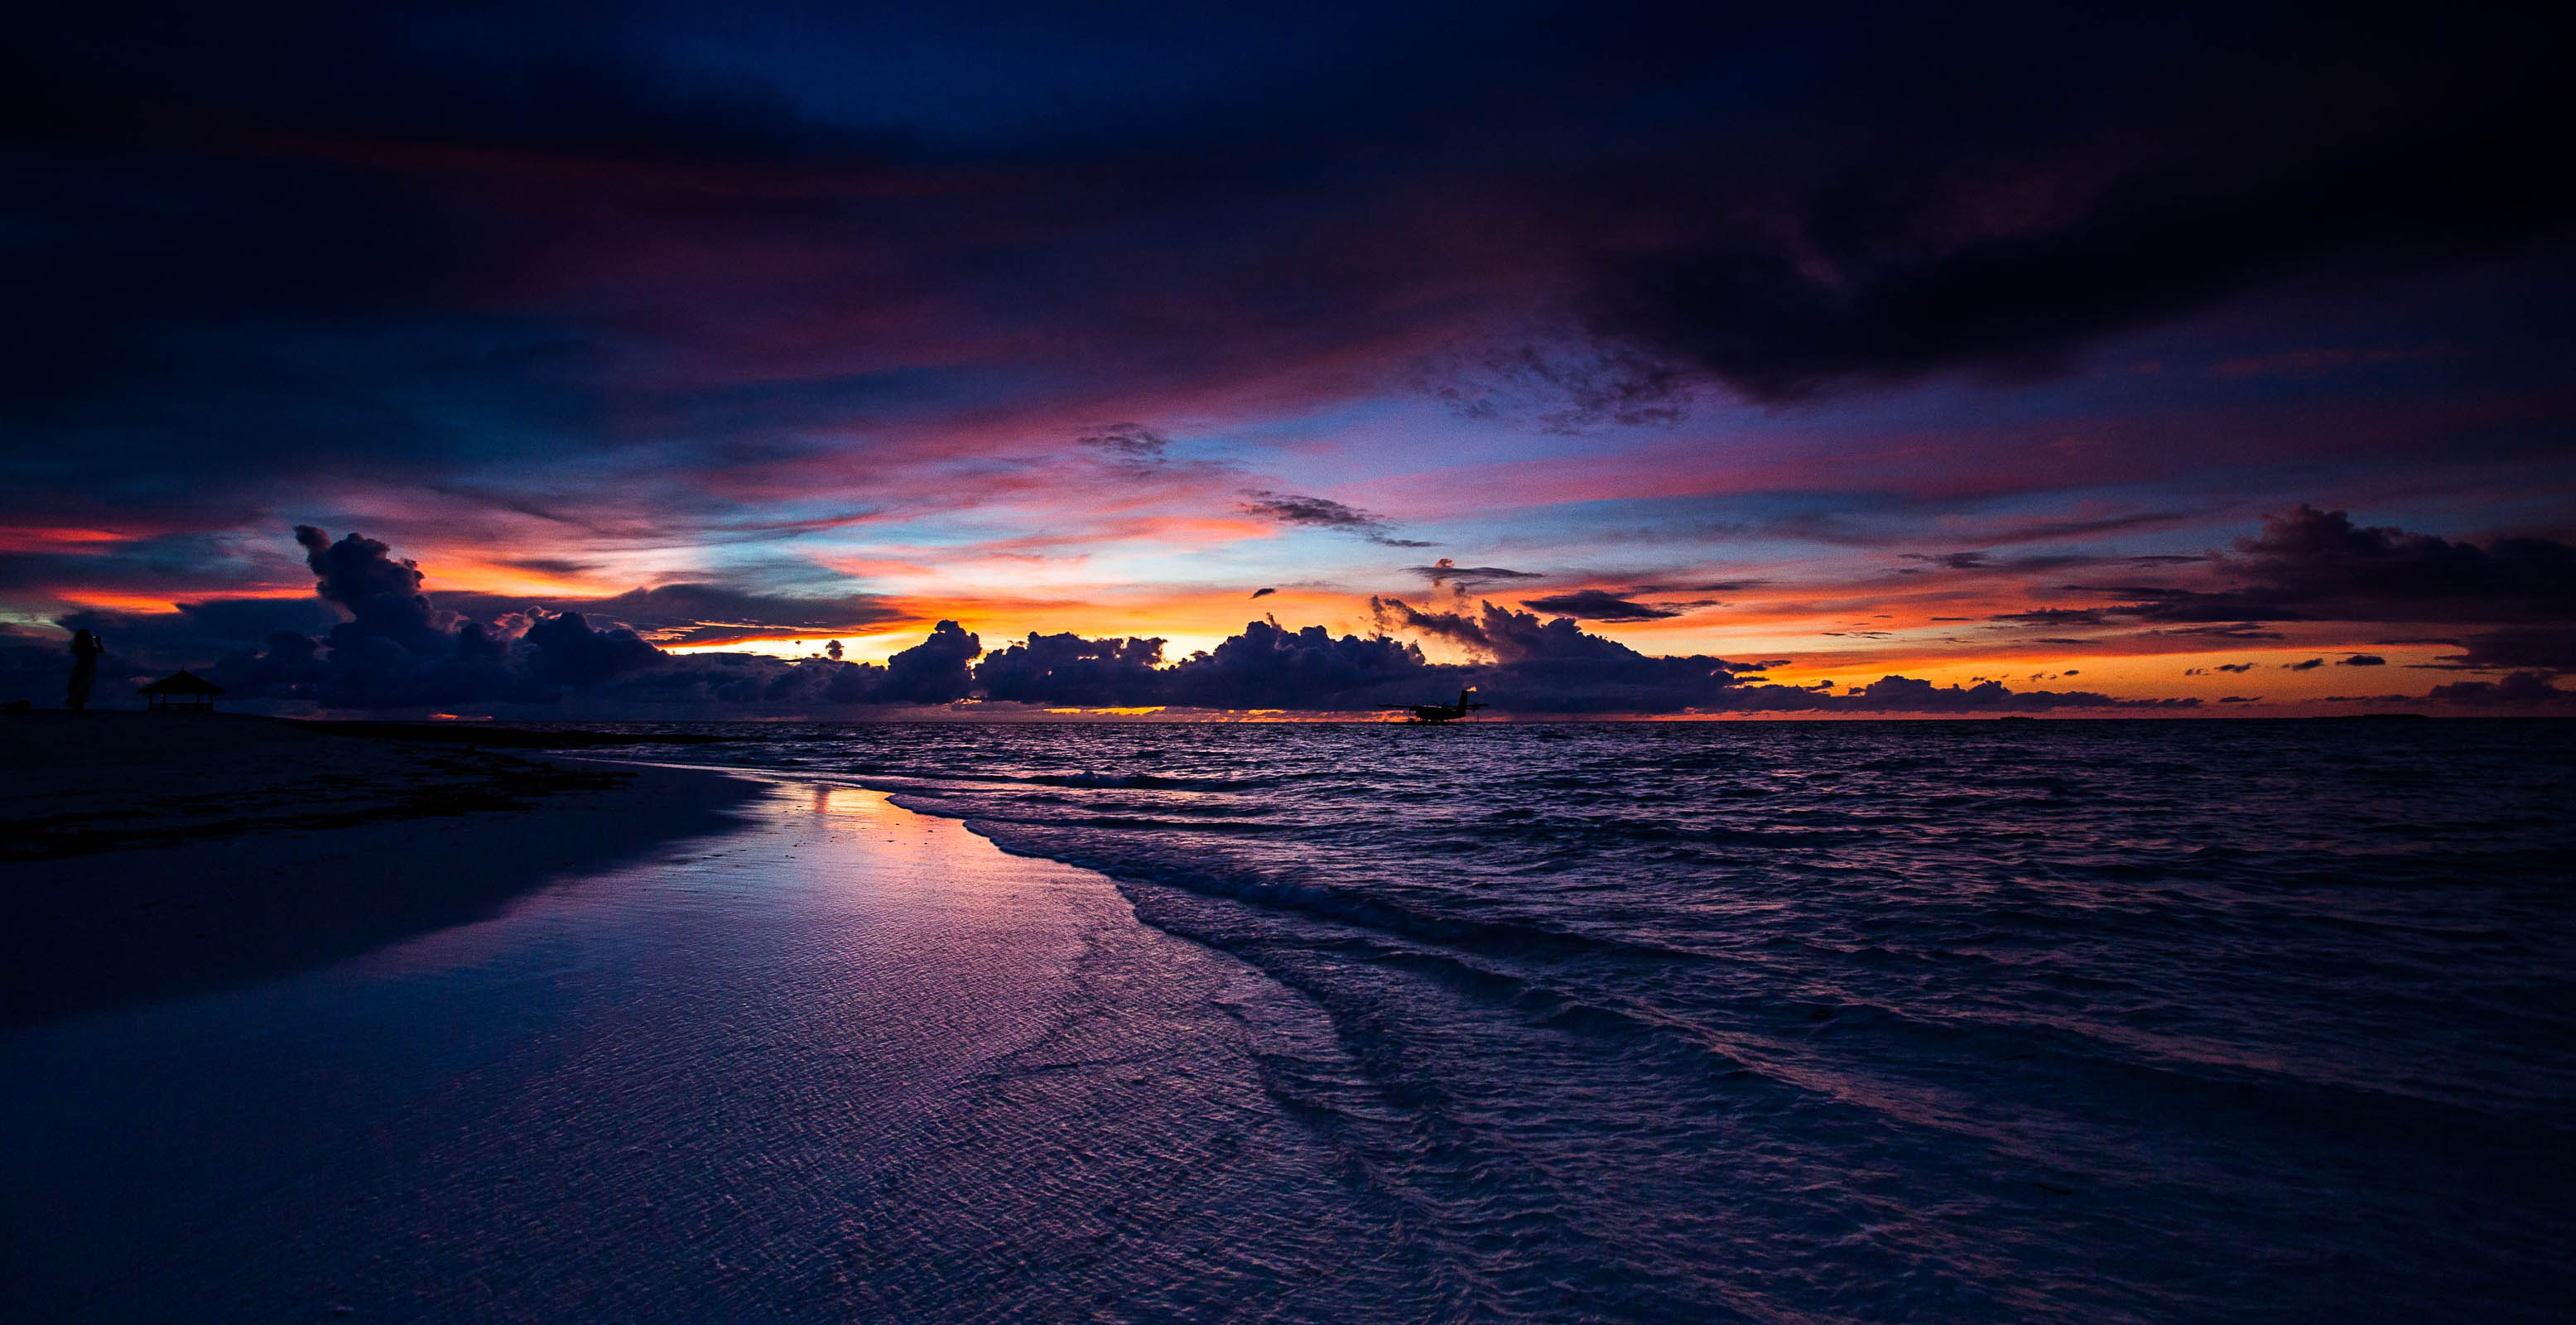 Sea Shore Sunset, HD Nature, 4k Wallpapers, Images ...